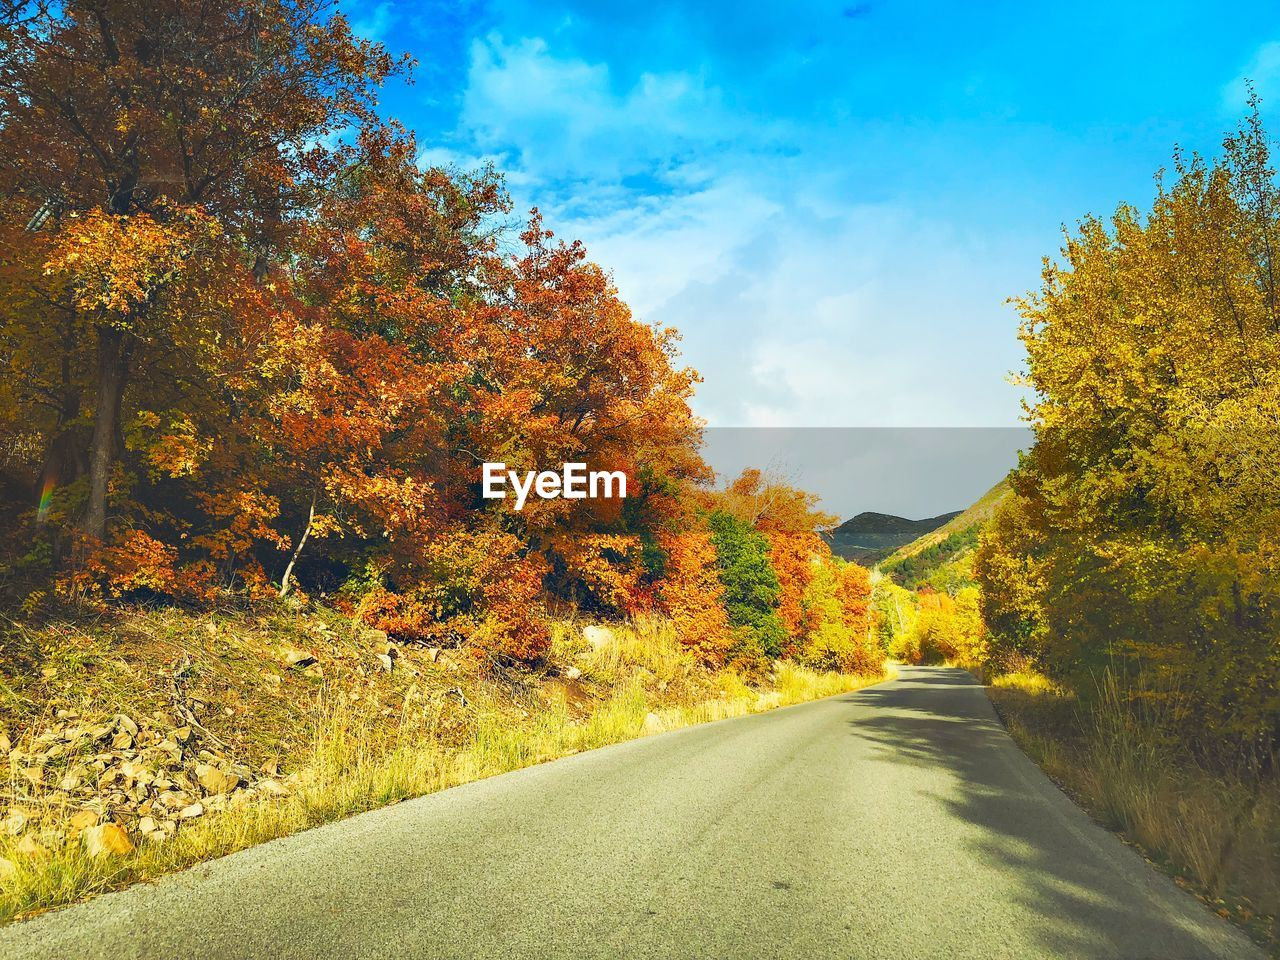 autumn, tree, road, the way forward, nature, change, orange color, beauty in nature, tranquil scene, scenics, outdoors, leaf, day, tranquility, sky, no people, transportation, yellow, landscape, growth